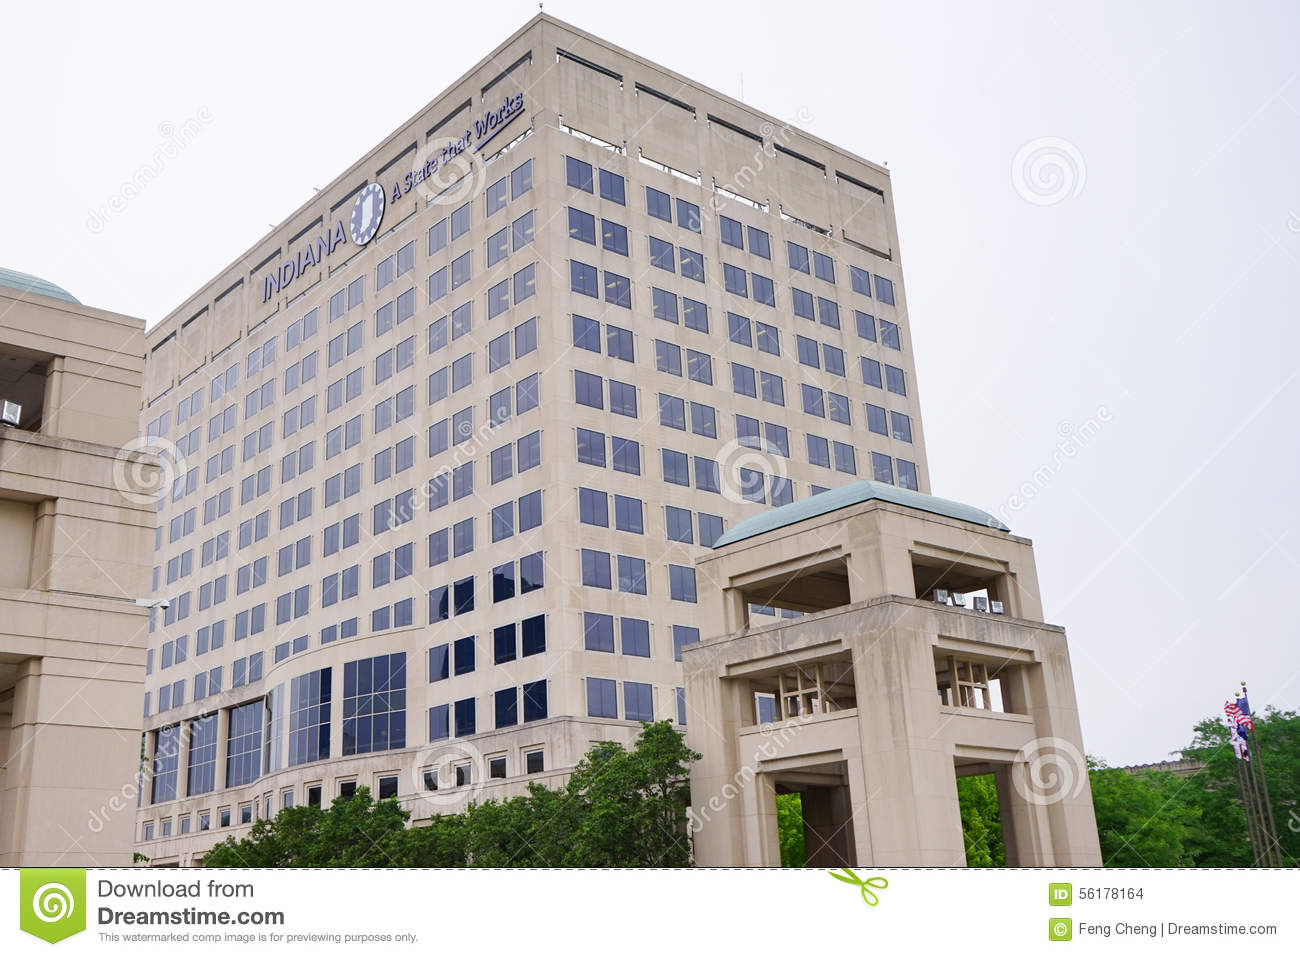 Indiana government center phone number thejudgereport827 for Laporte indiana phone directory